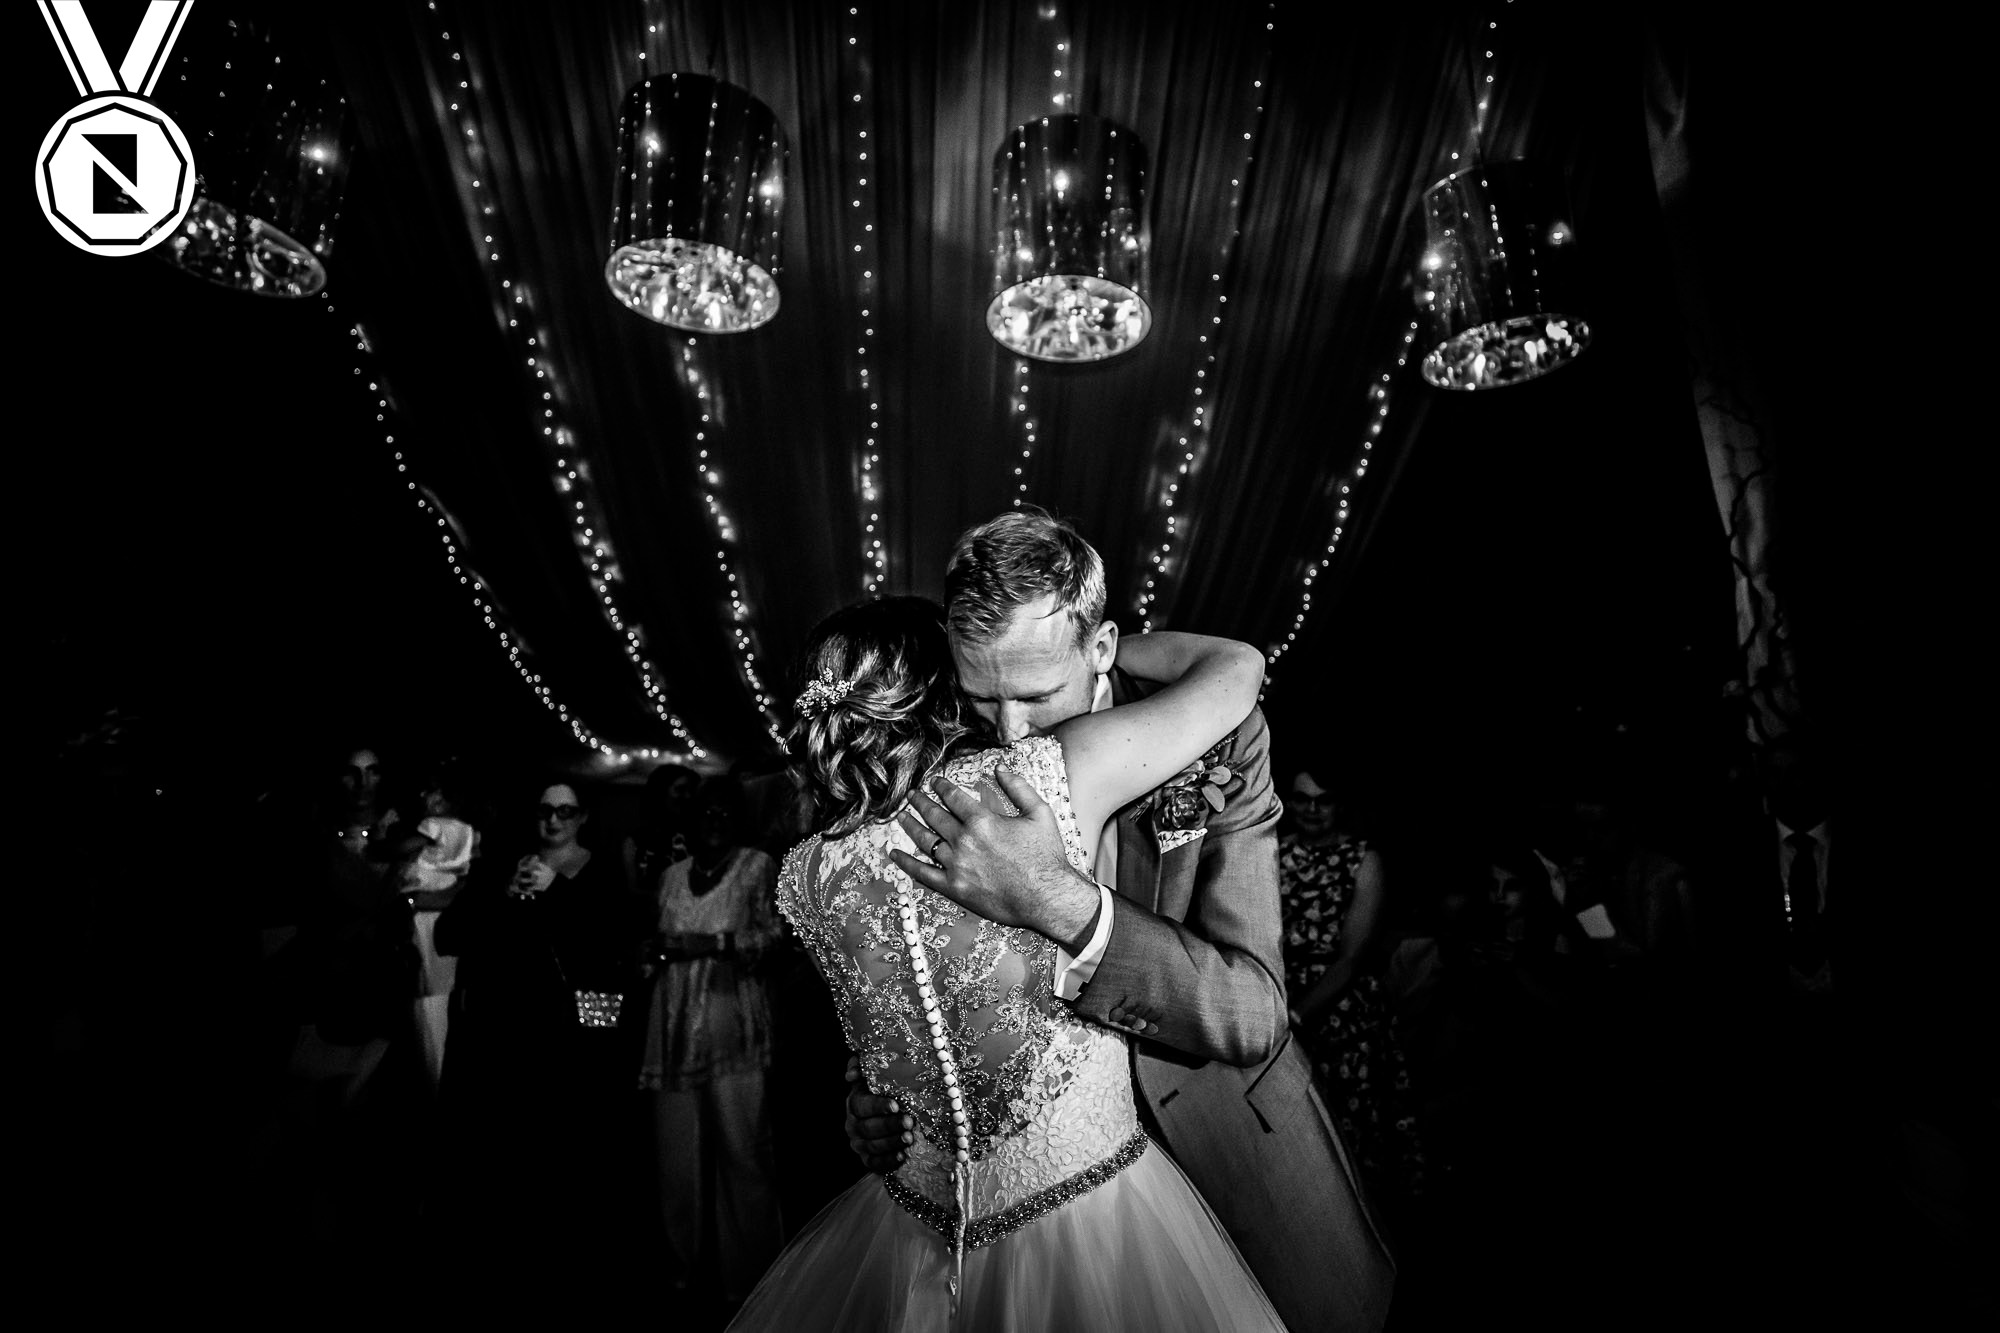 Wedding Photography Awards June 2018 - NineDots